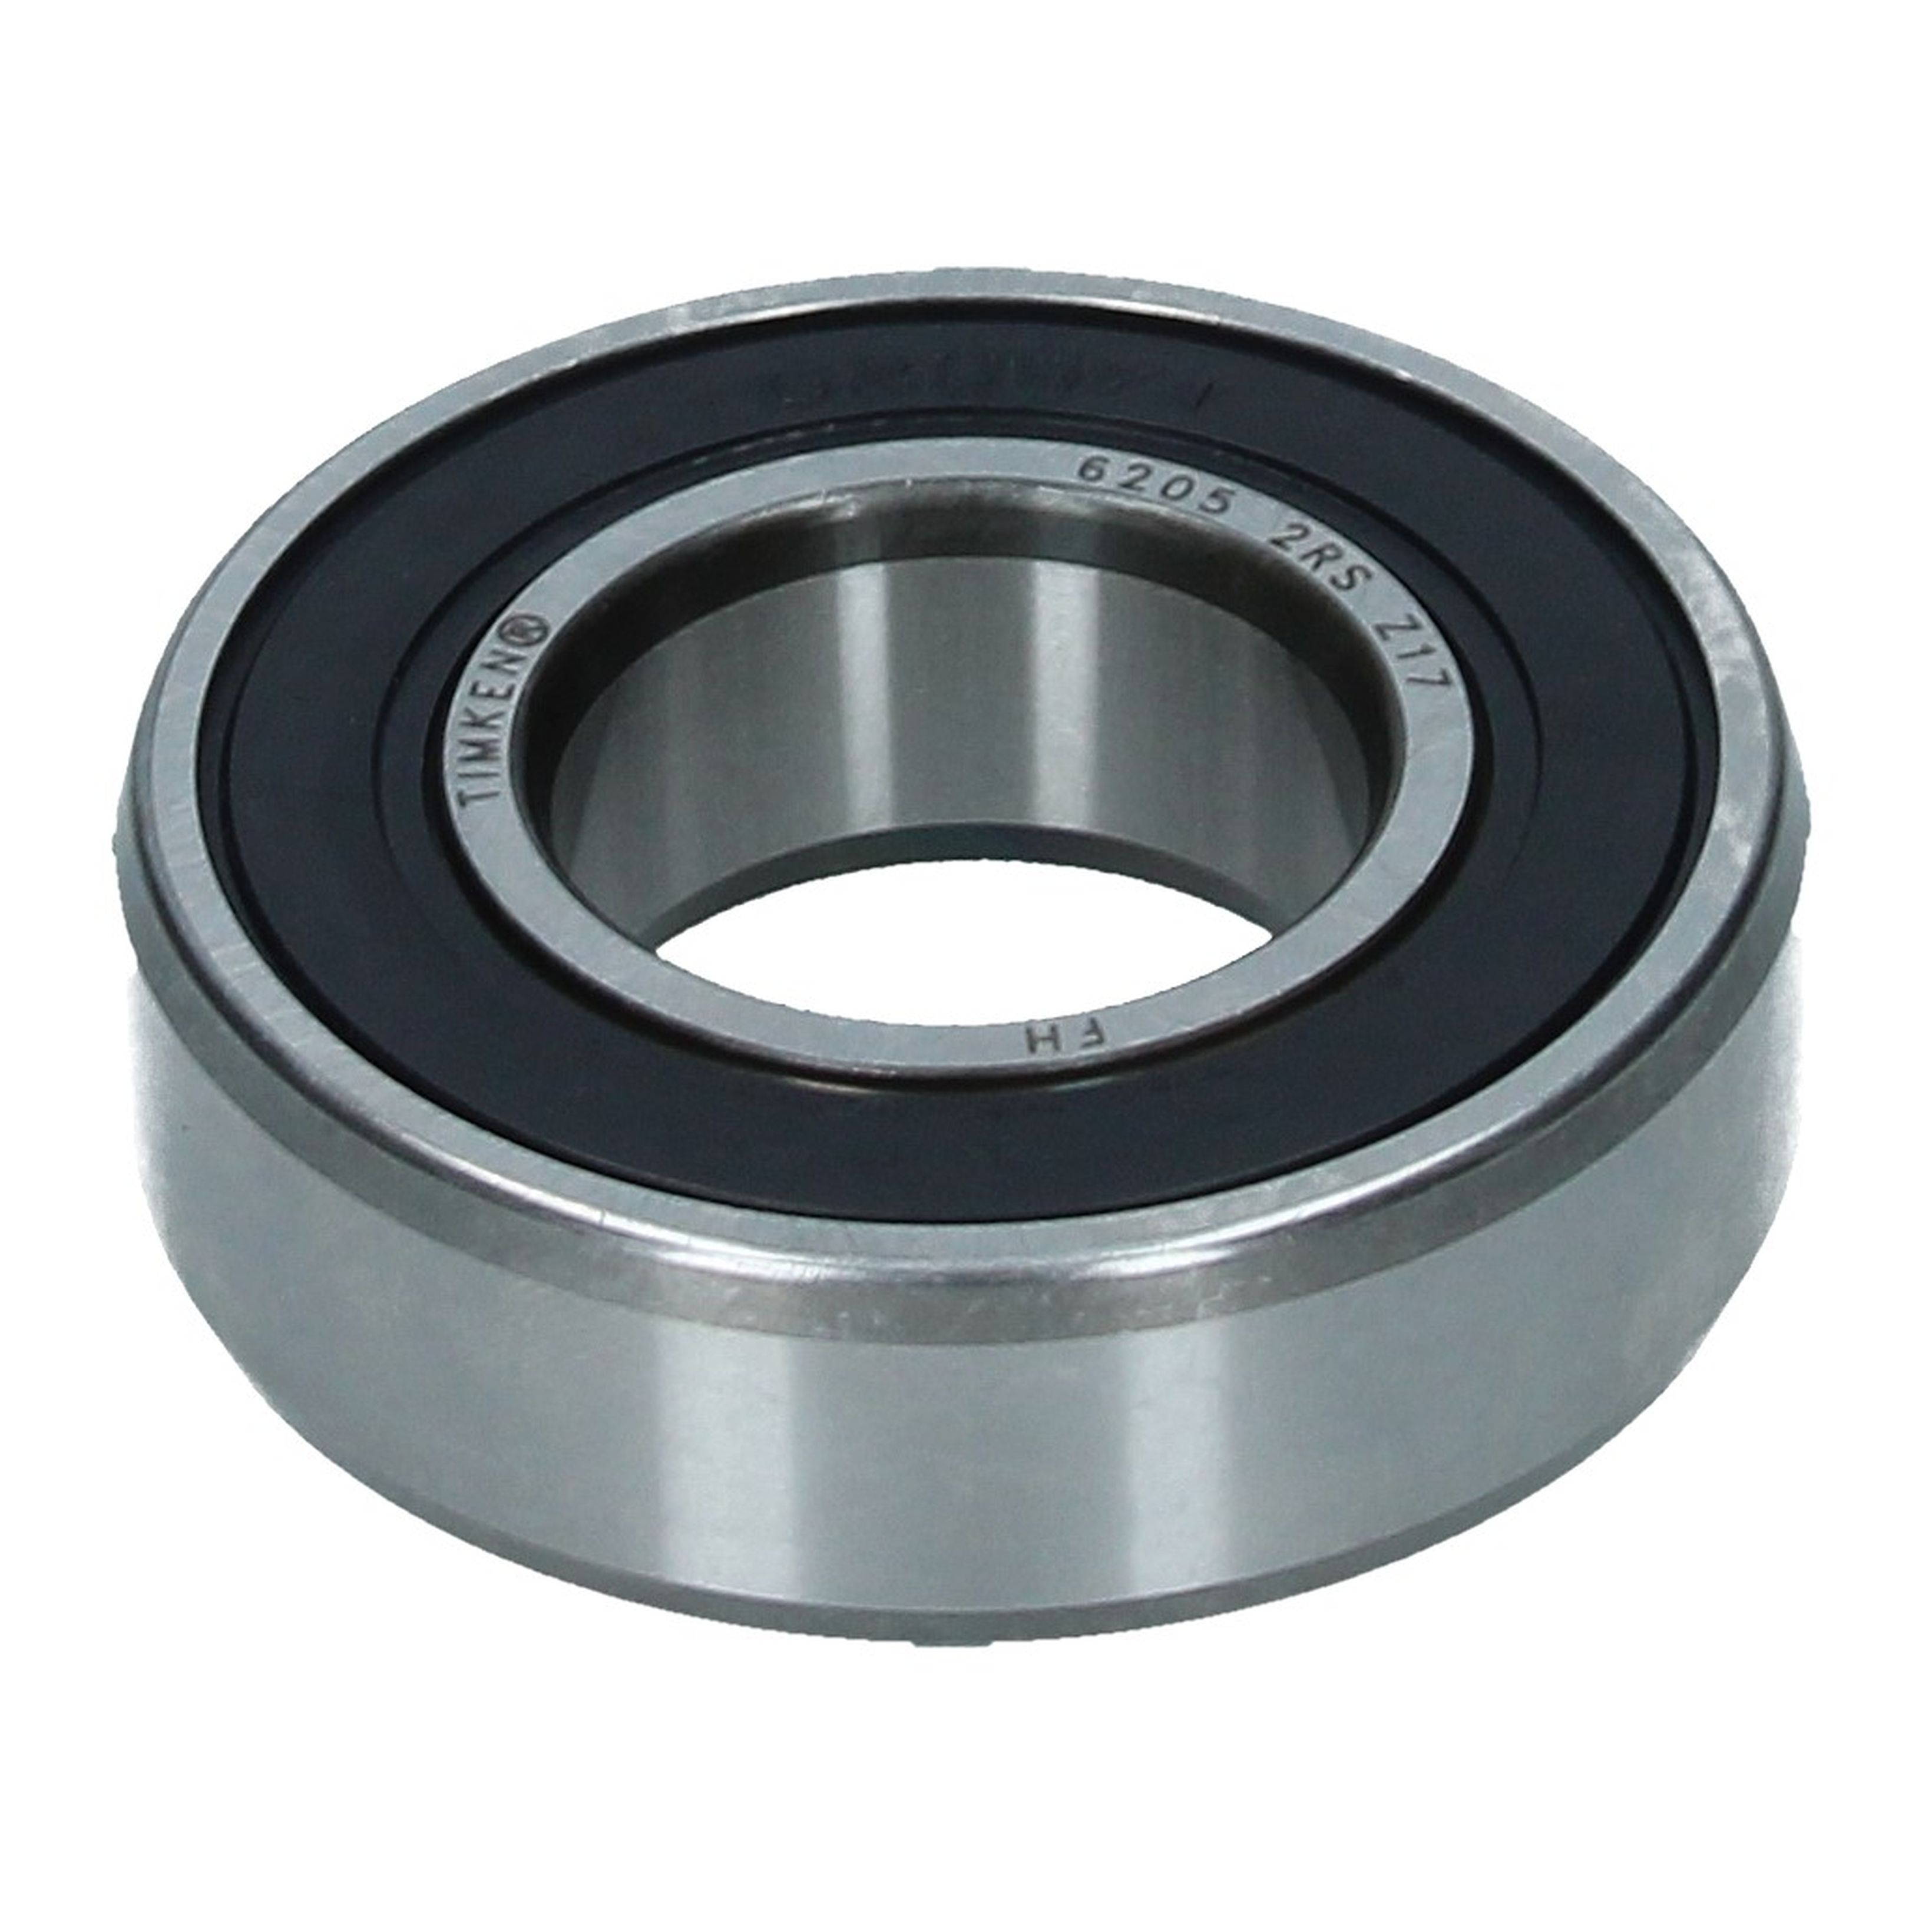 Ferrari Steering Column Support Bearing (25x52x15) (ST00279n)